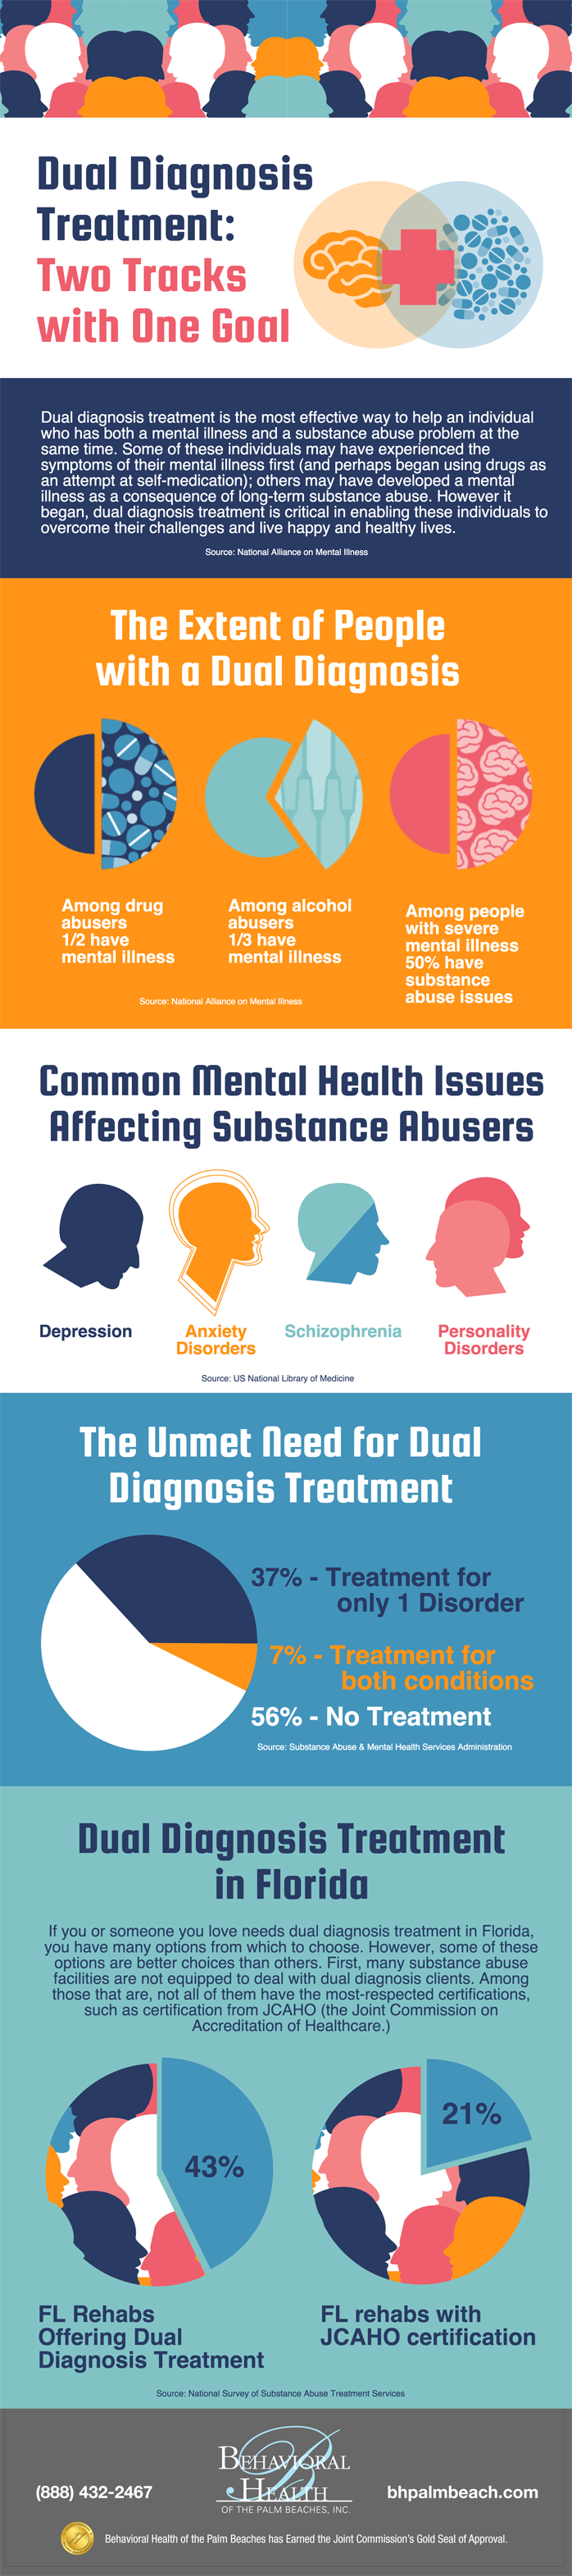 infographic explaining what Florida Dual Diagnosis Treatment is and how it is used to treat patients suffering from both addiction and mental health problems at the same time